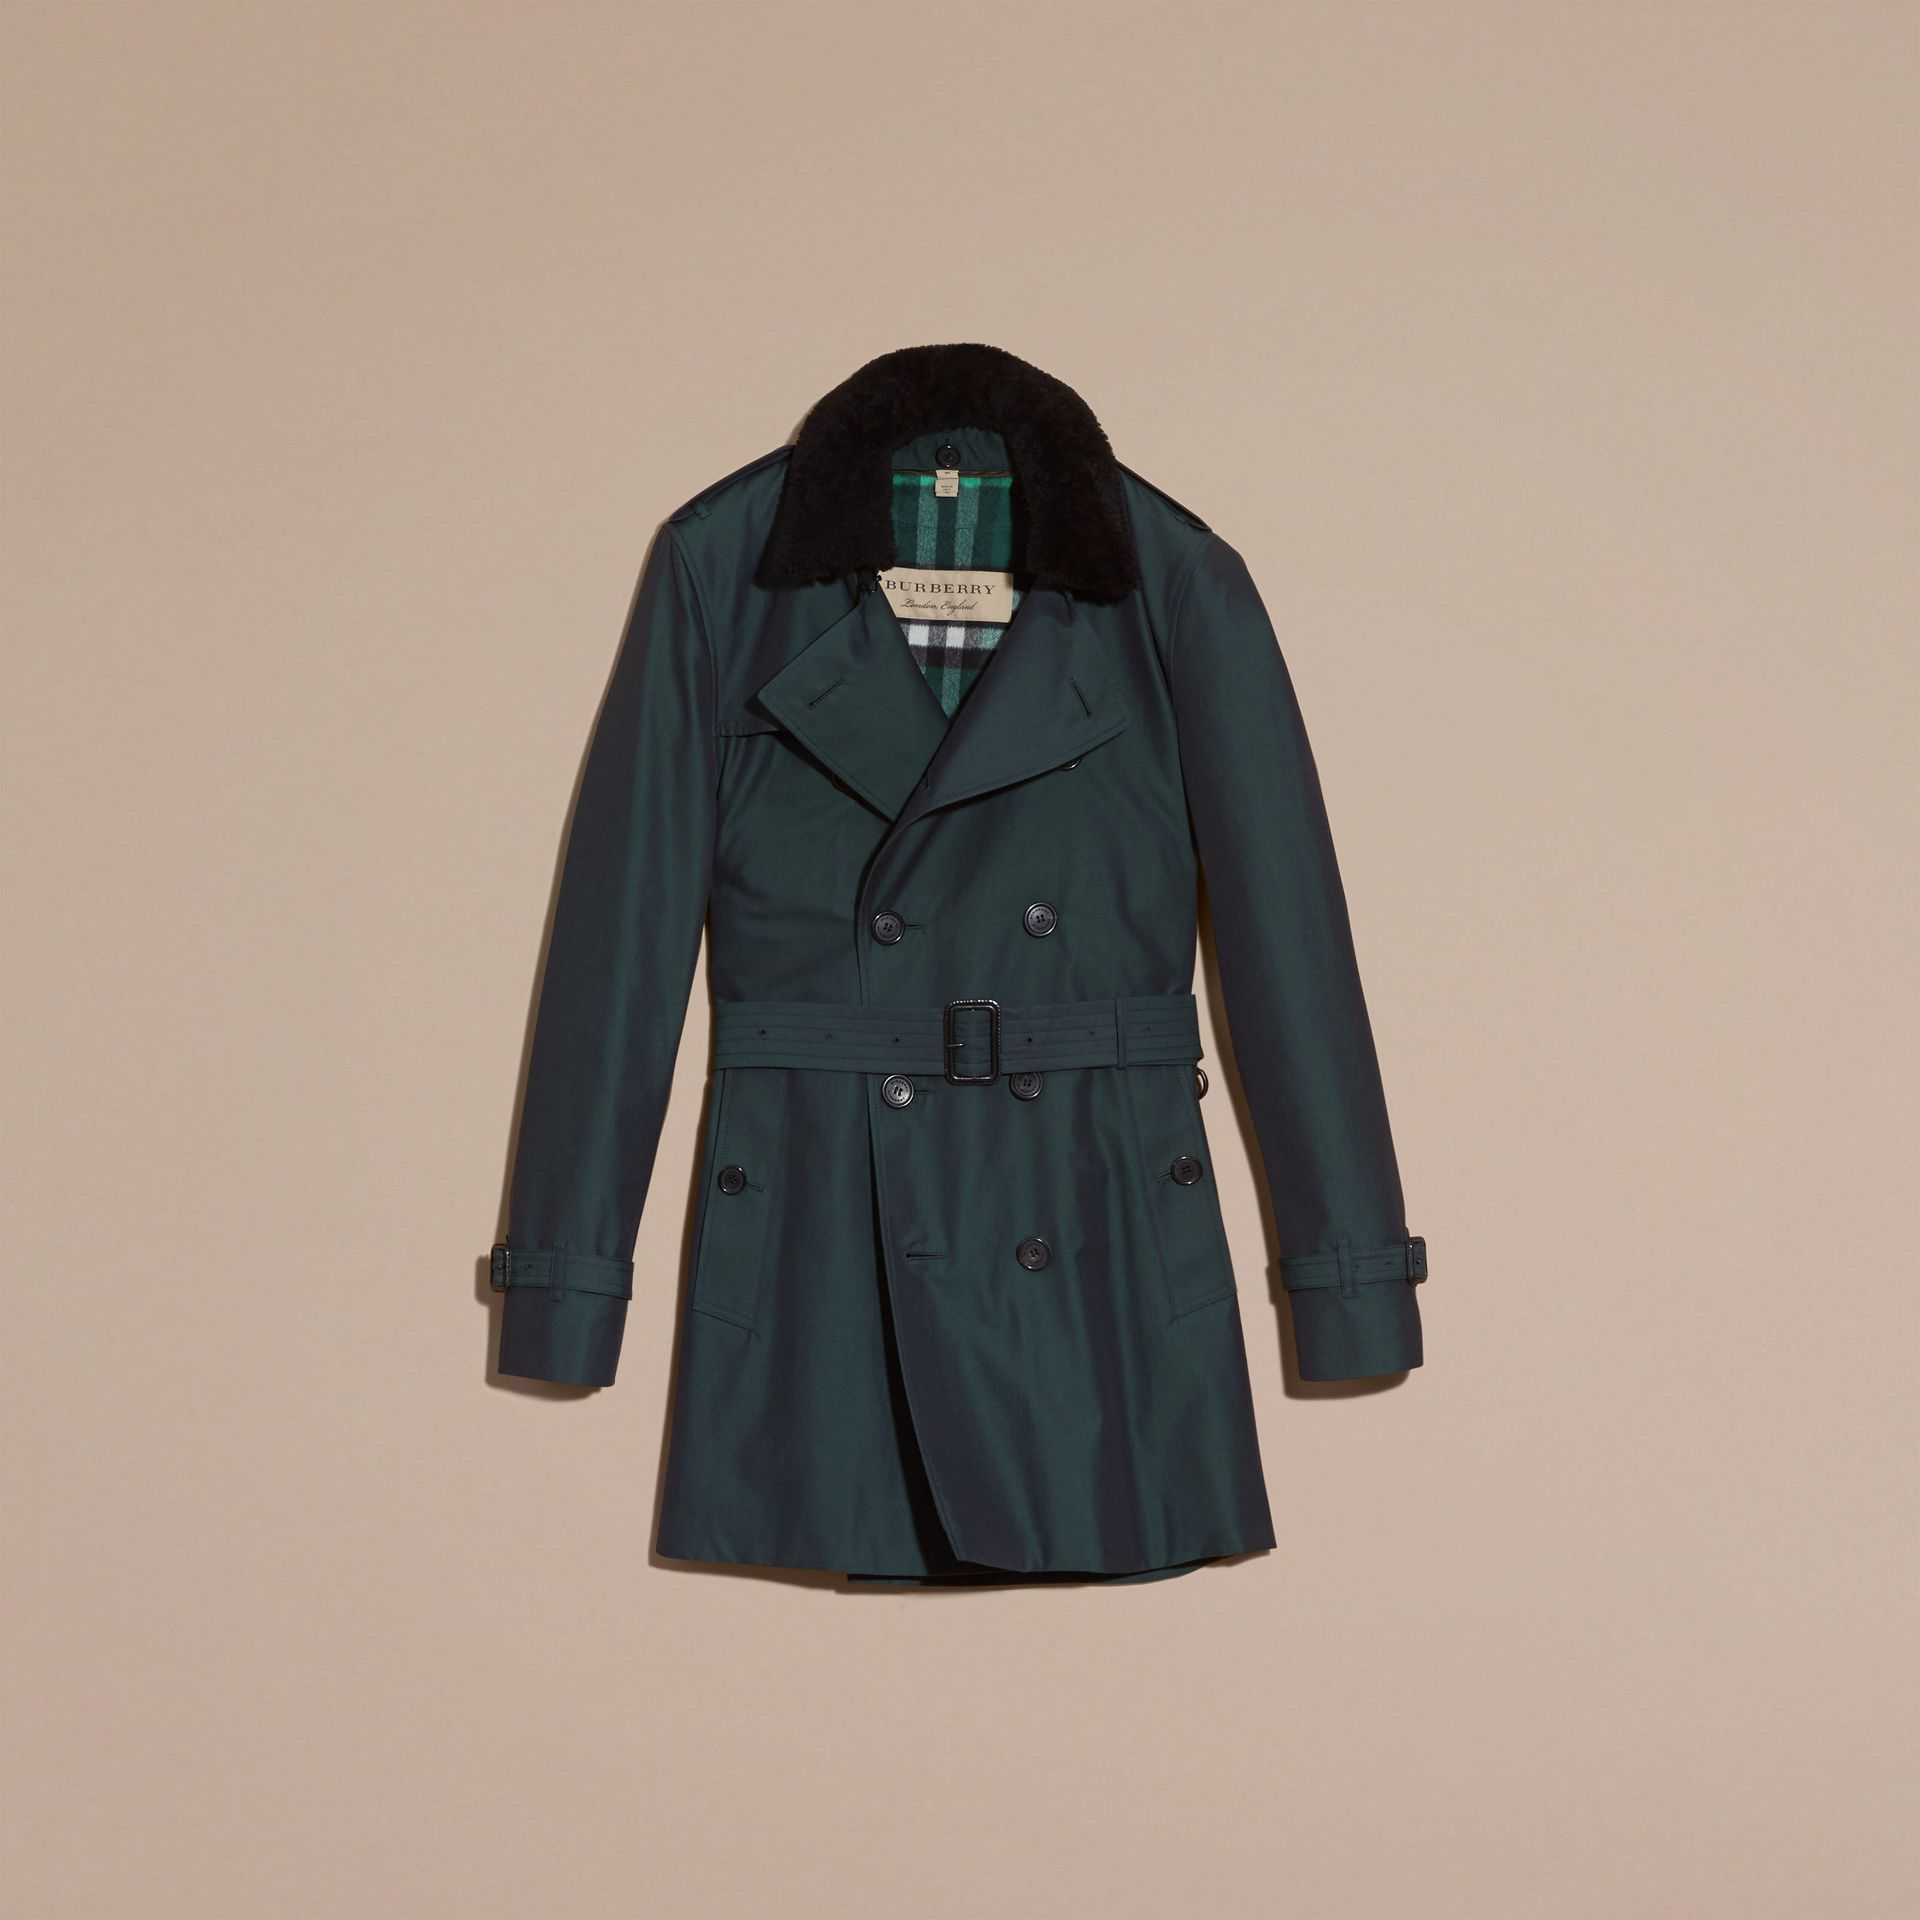 Racing green Detachable Shearling Topcollar Cotton Gabardine Trench Coat with Warmer Racing Green - gallery image 4